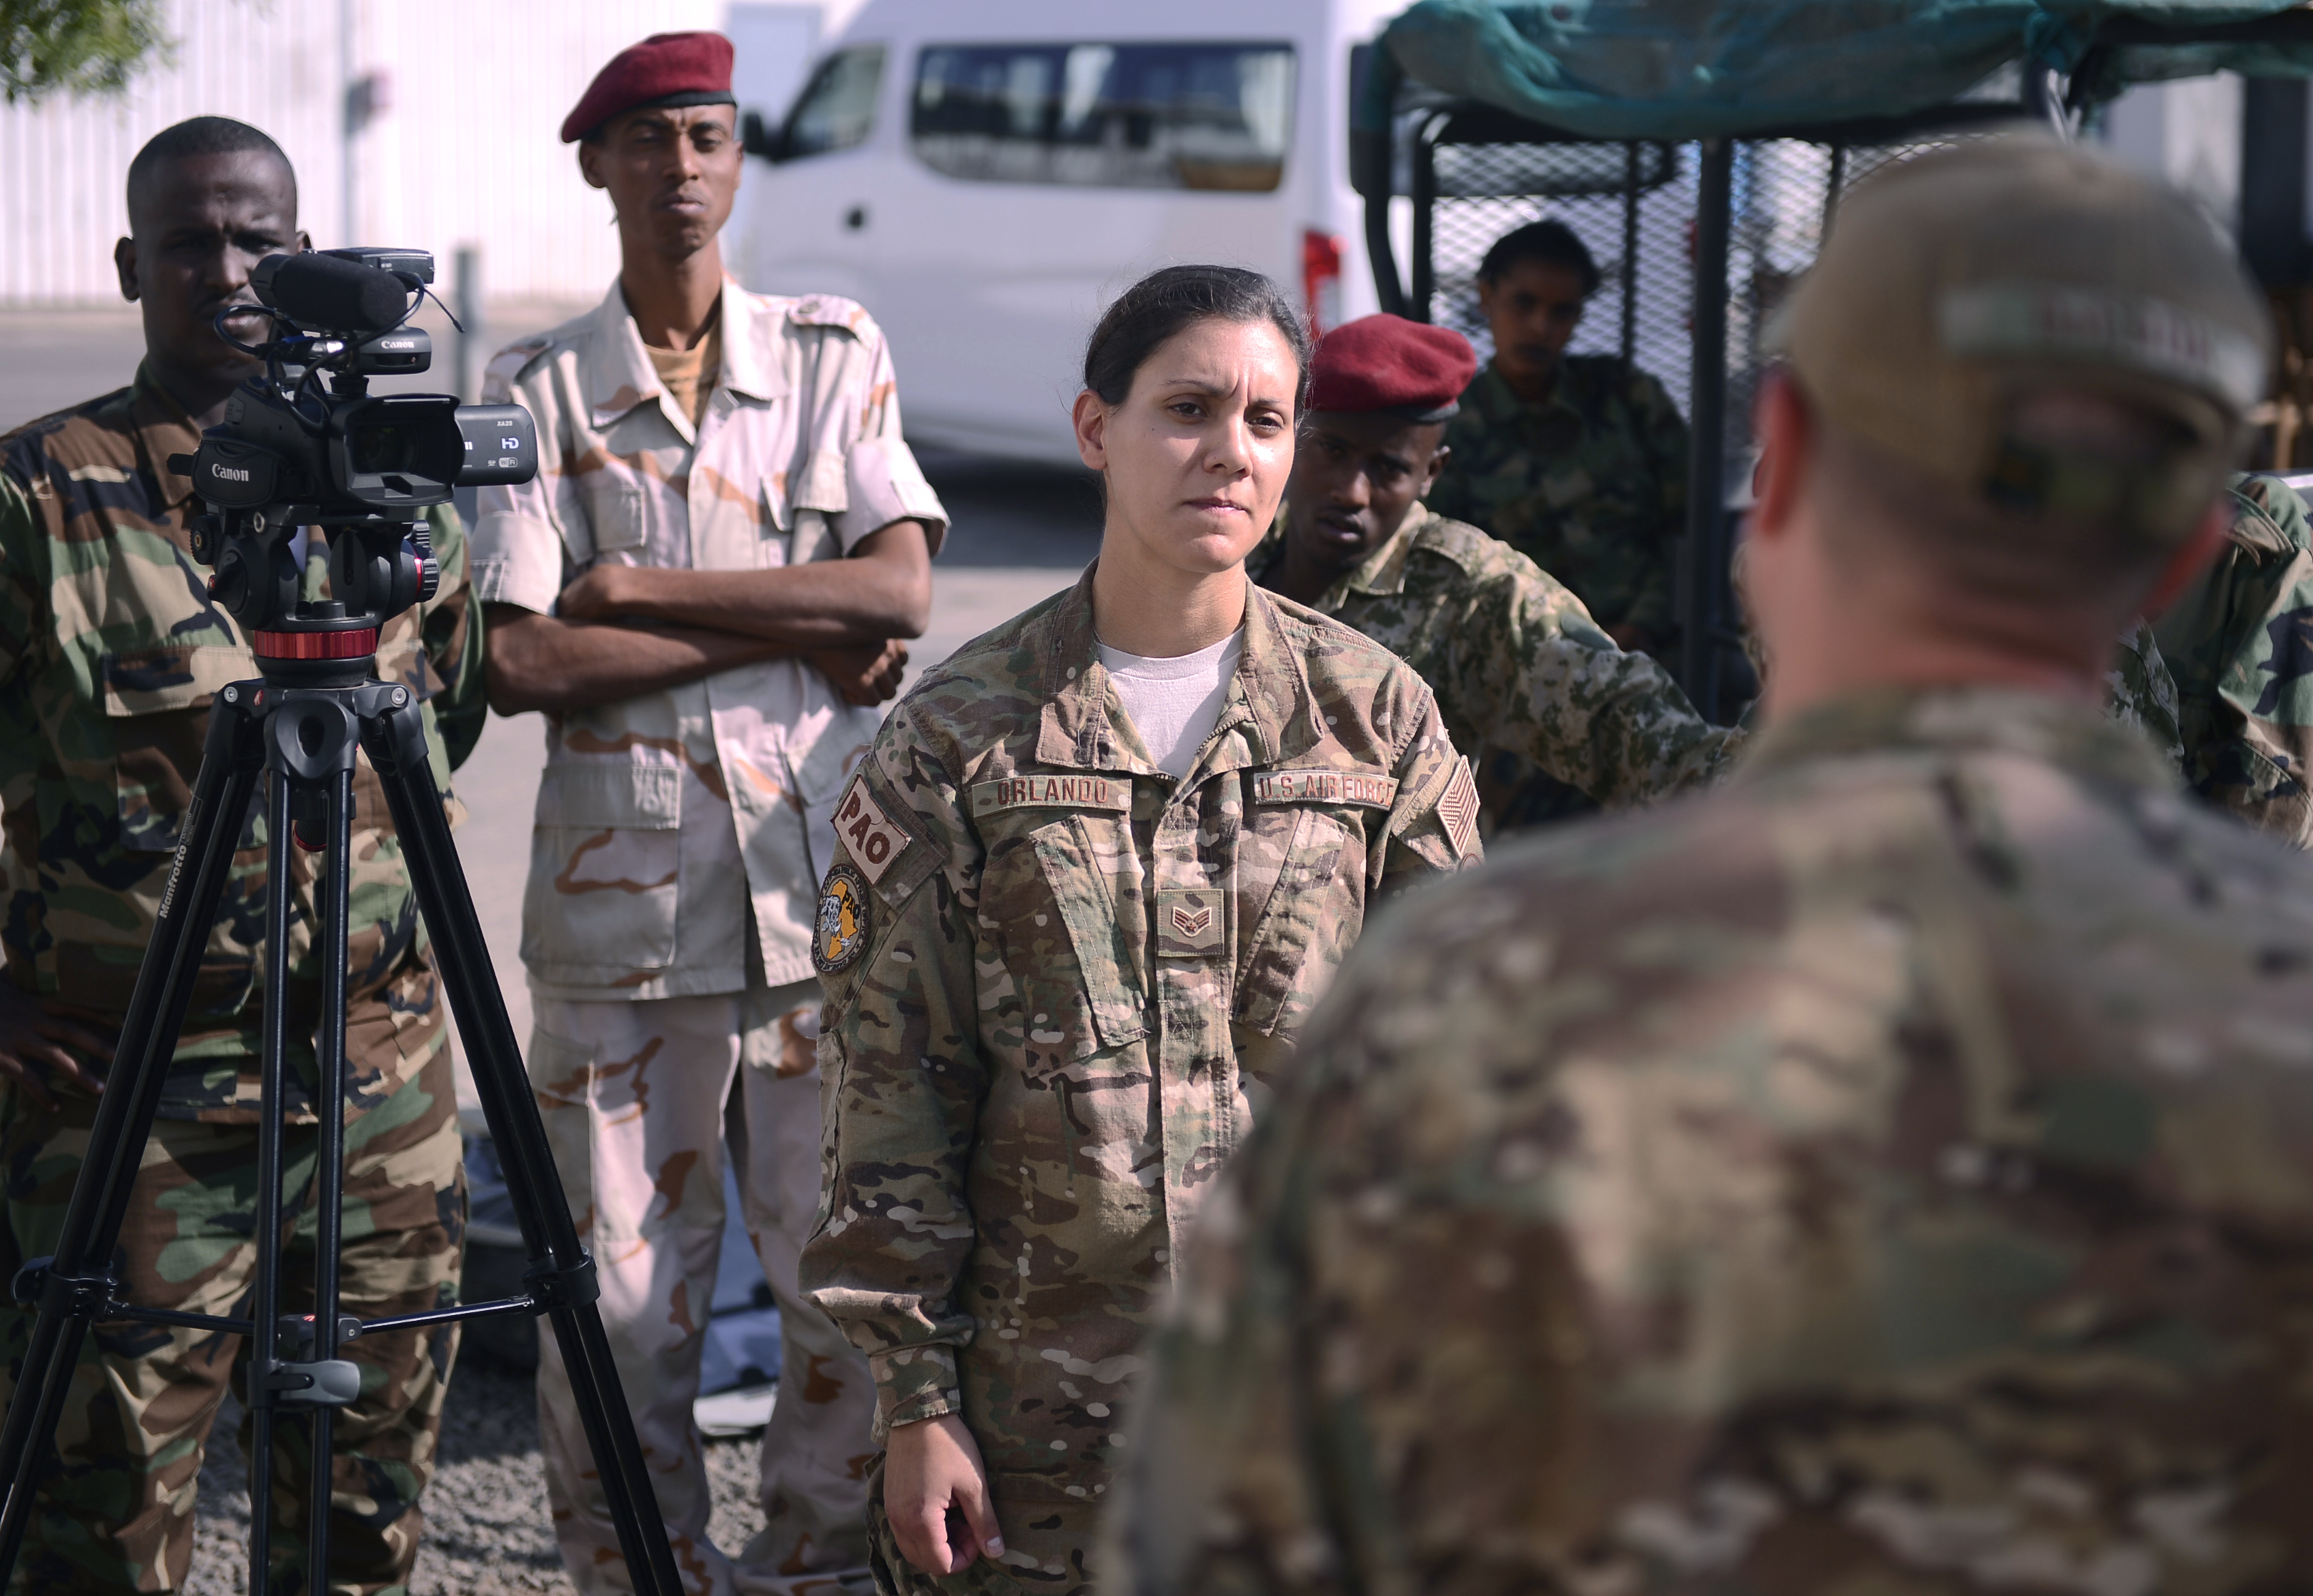 Senior Airman Nina Orlando, Combined Joint Task Force-Horn of Africa broadcast journalist, center, interviews Tech. Sgt. Daniel DeCook, photojournalism NCOIC, during a scenario Dec. 3, 2015, at Camp Lemonnier, Djibouti. Combined Joint Task Force-Horn of Africa public affairs personnel shared U.S. techniques for shooting video, operating the camera and conducting a live interview to help improve the FAD's public affairs capabilities. (U.S. Air Force photo by Senior Airman Peter Thompson)